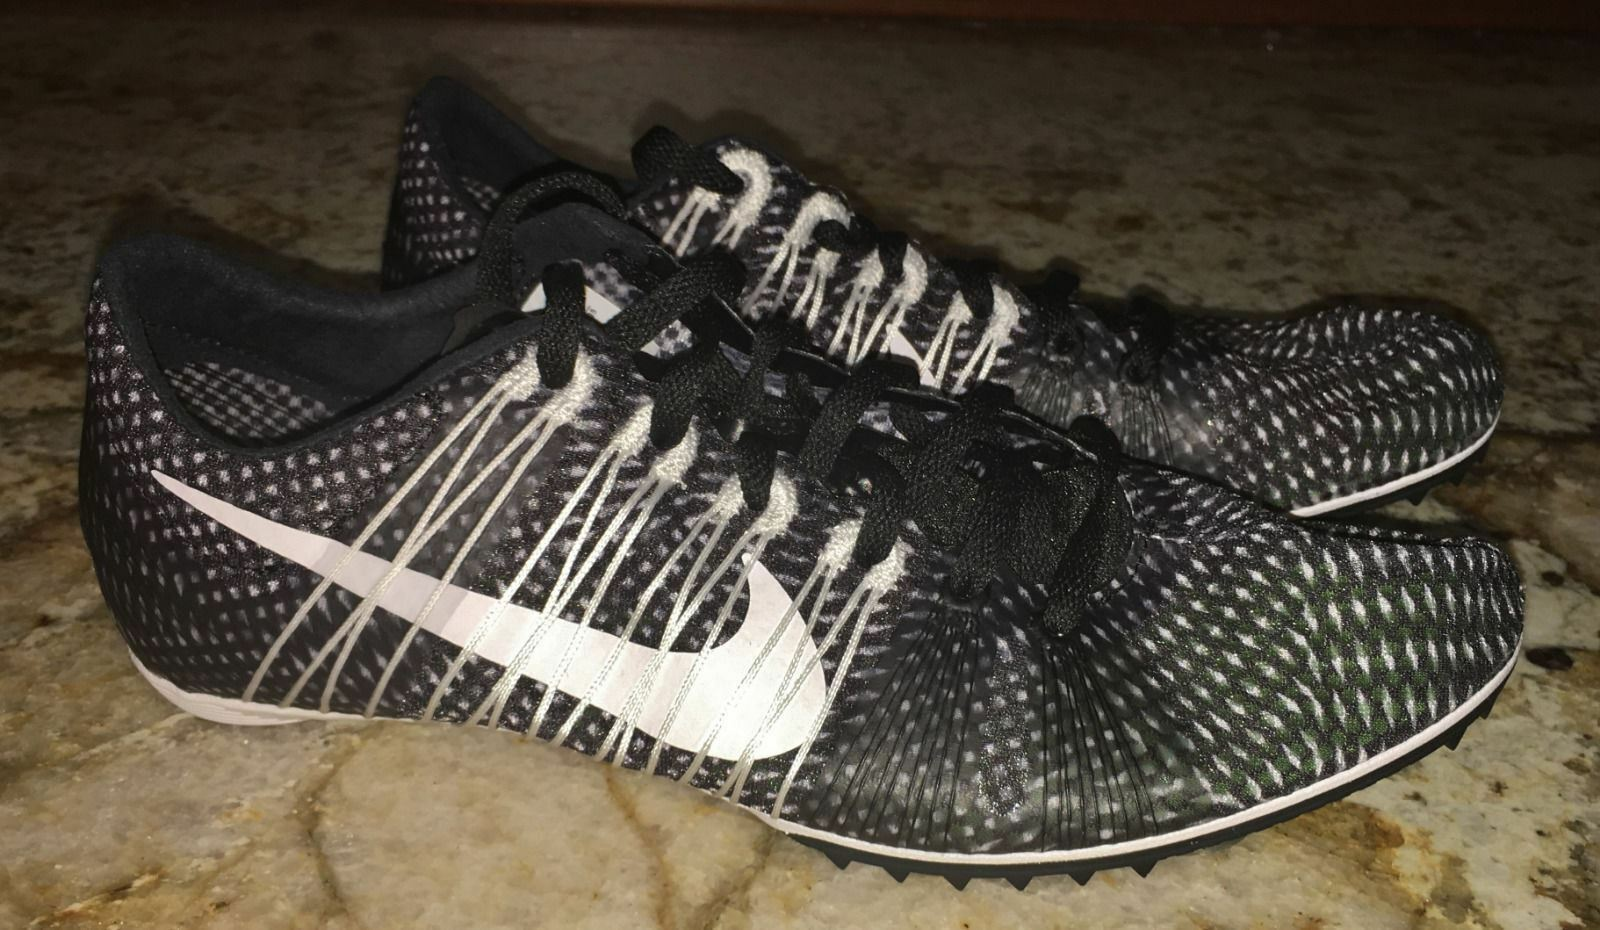 NIKE Zoom Victory 2 Black White White White Mid Distance Track Spikes shoes NEW Mens 7.5 10 efd7ca